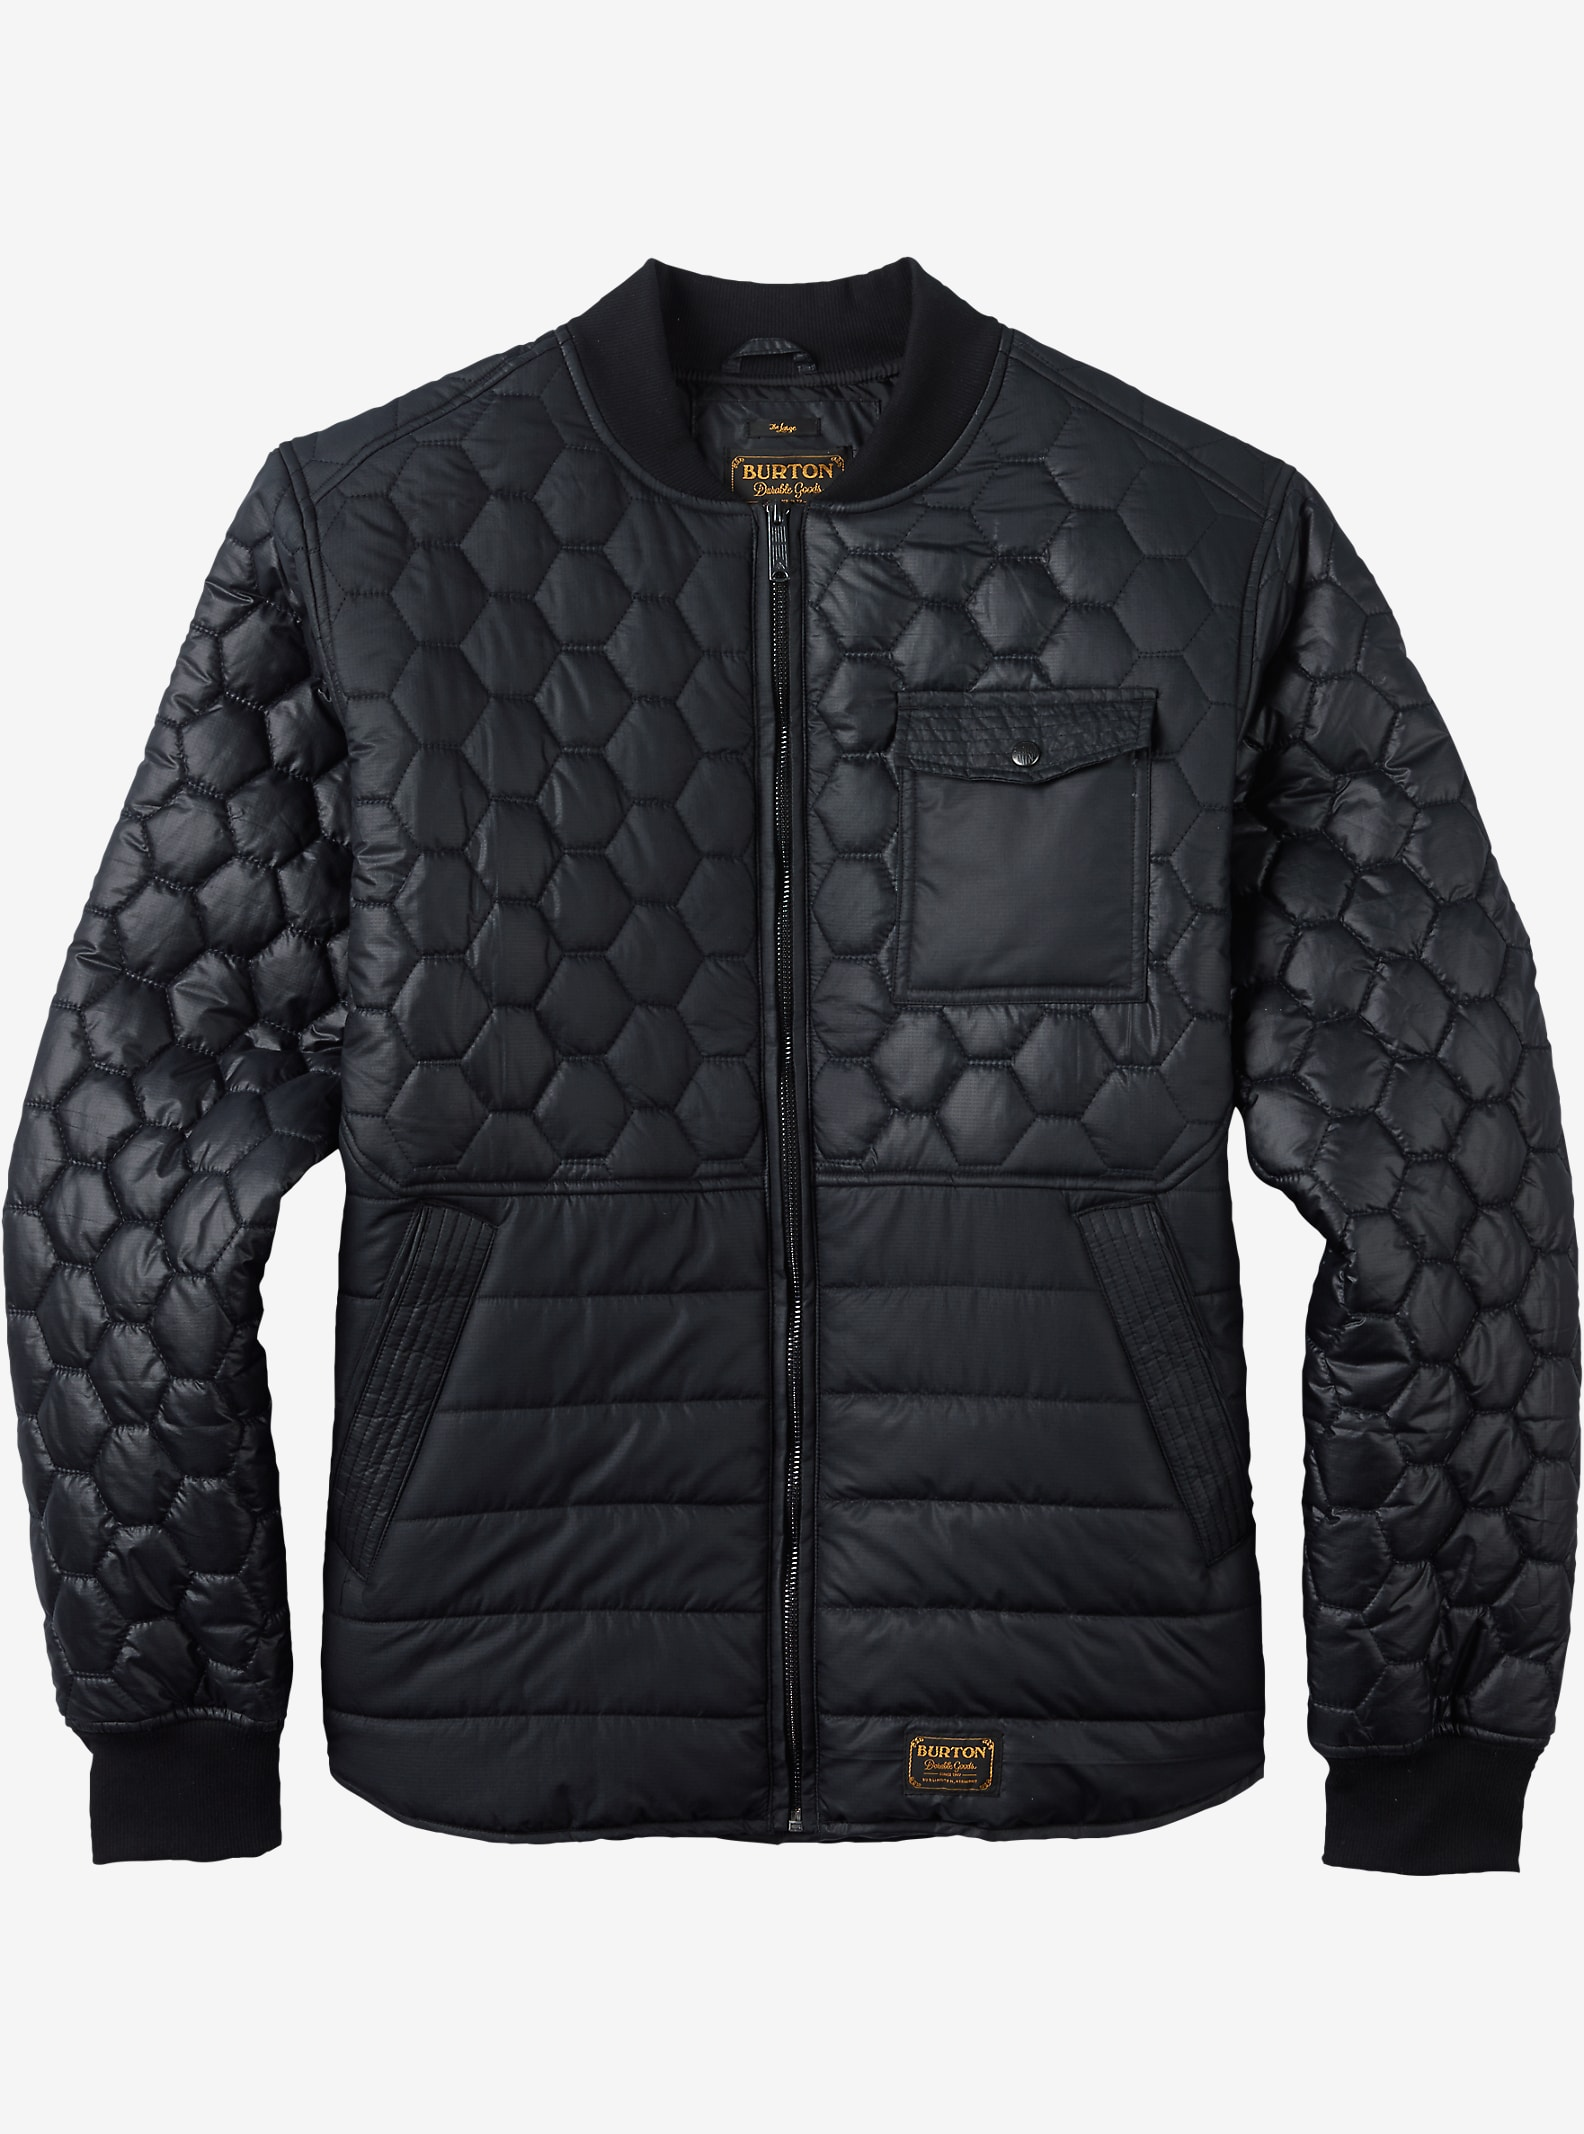 Burton Mallett Bomber Jacket shown in True Black